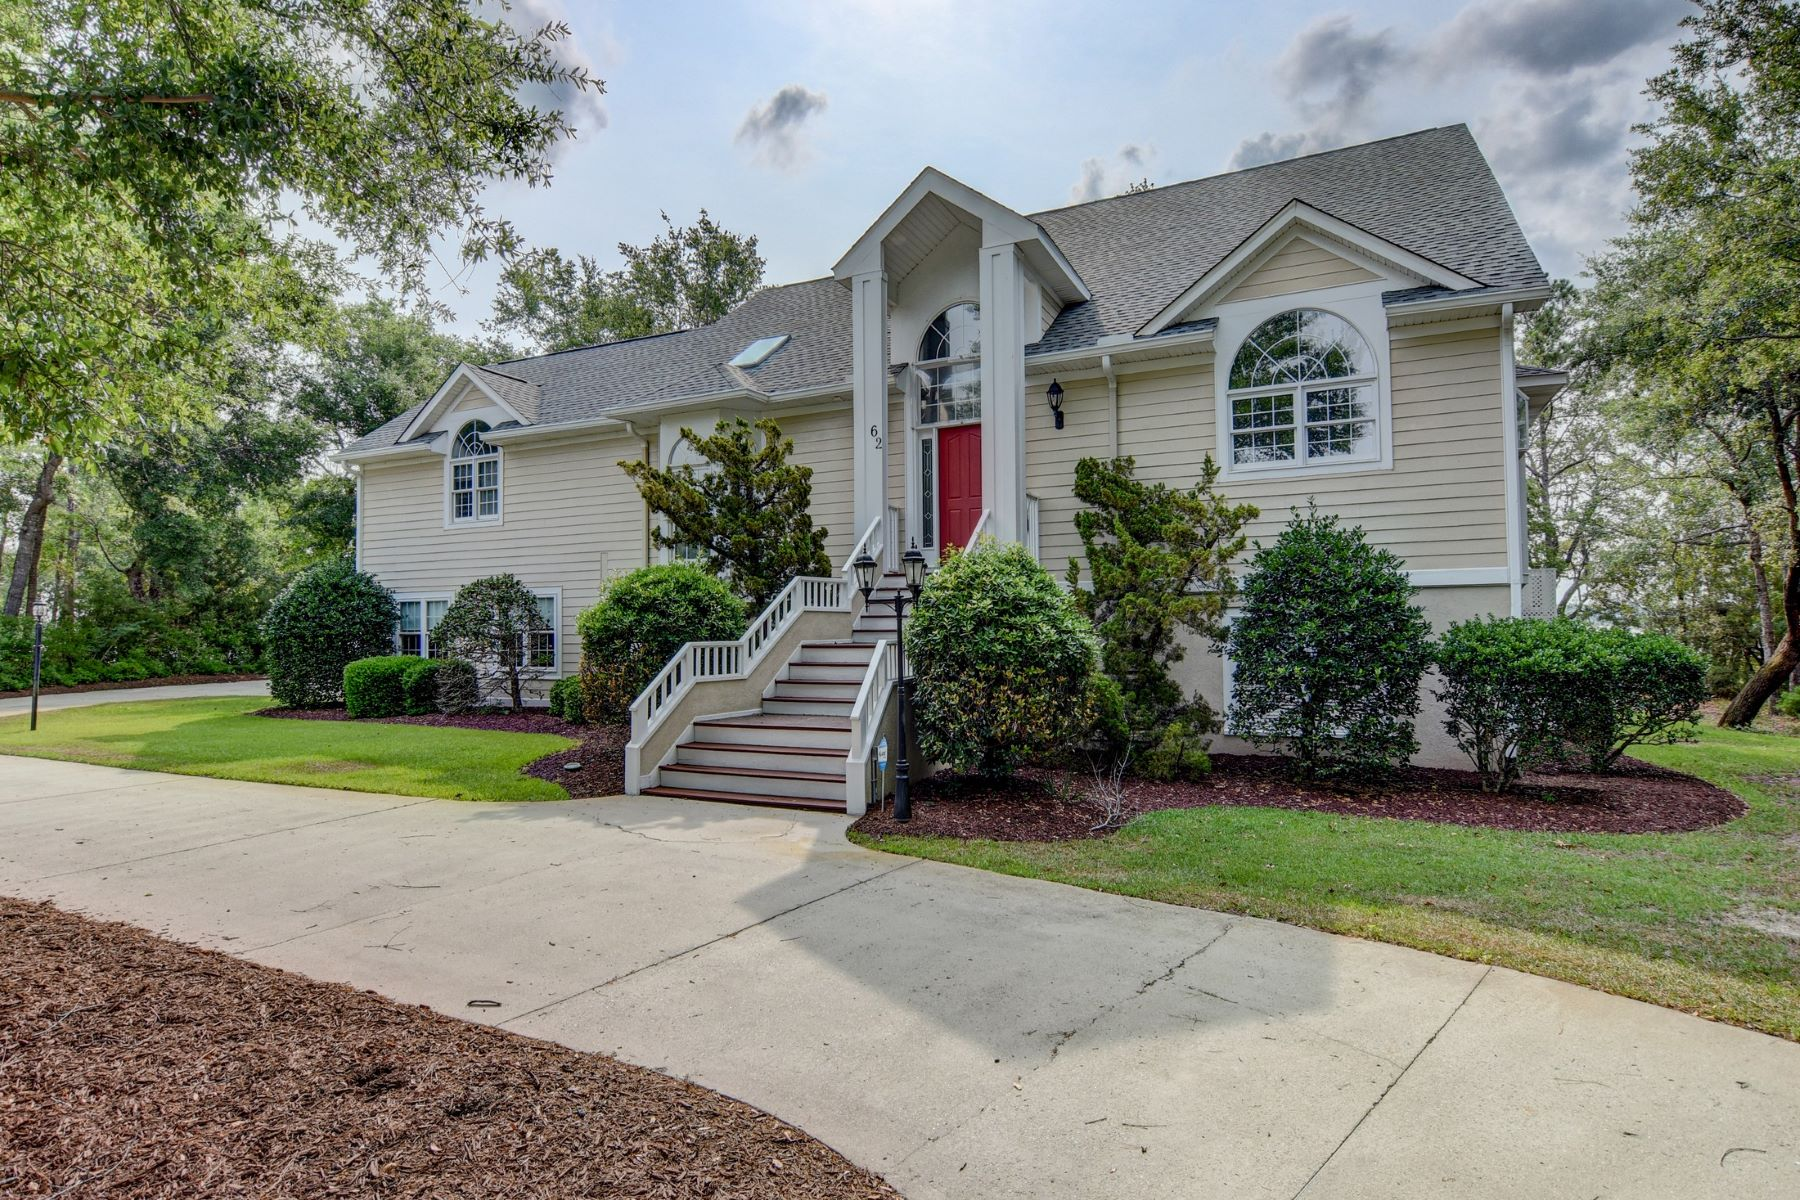 Single Family Homes for Active at Beautiful Deep Waterfront Home in Private Community 62 Myrtle Point Circle Supply, North Carolina 28462 United States